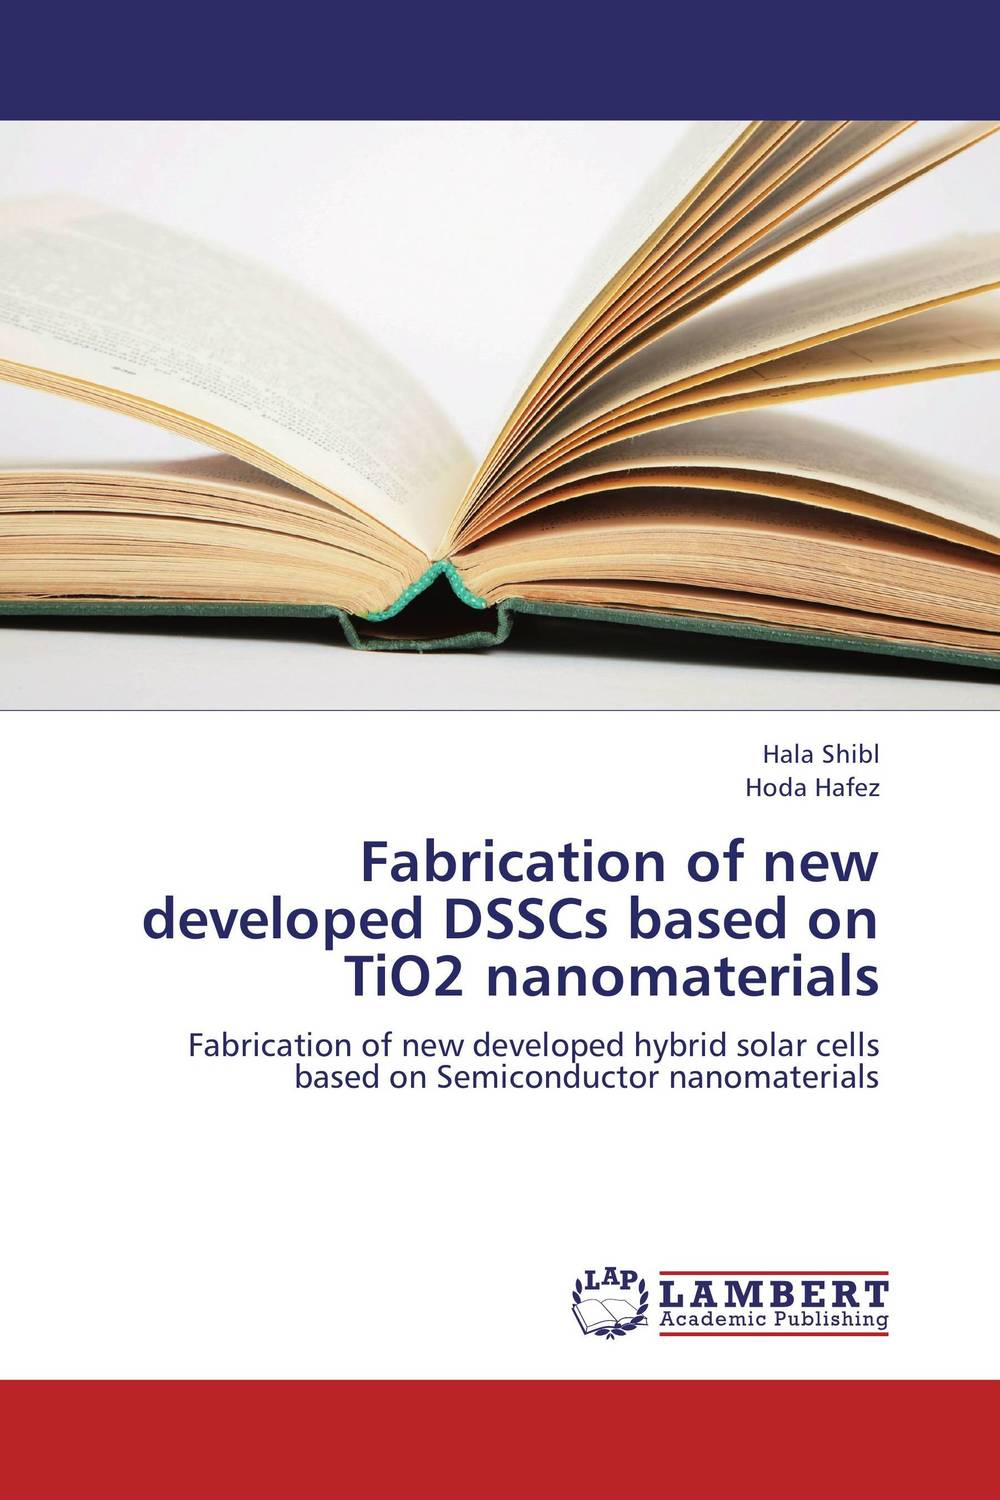 Fabrication of new developed DSSCs based on TiO2 nanomaterials